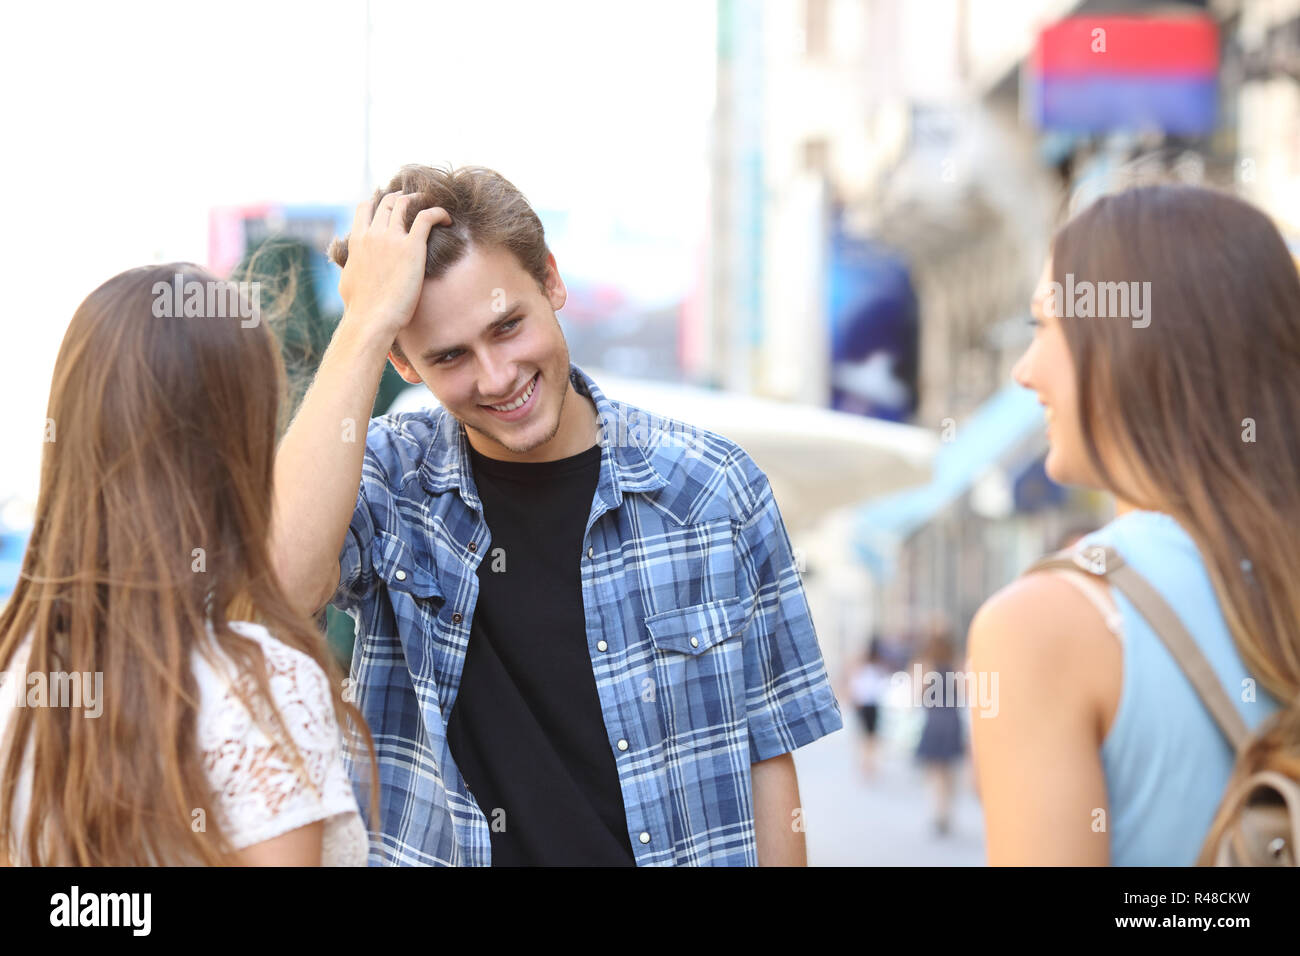 Young man flirting with two girls - Stock Image